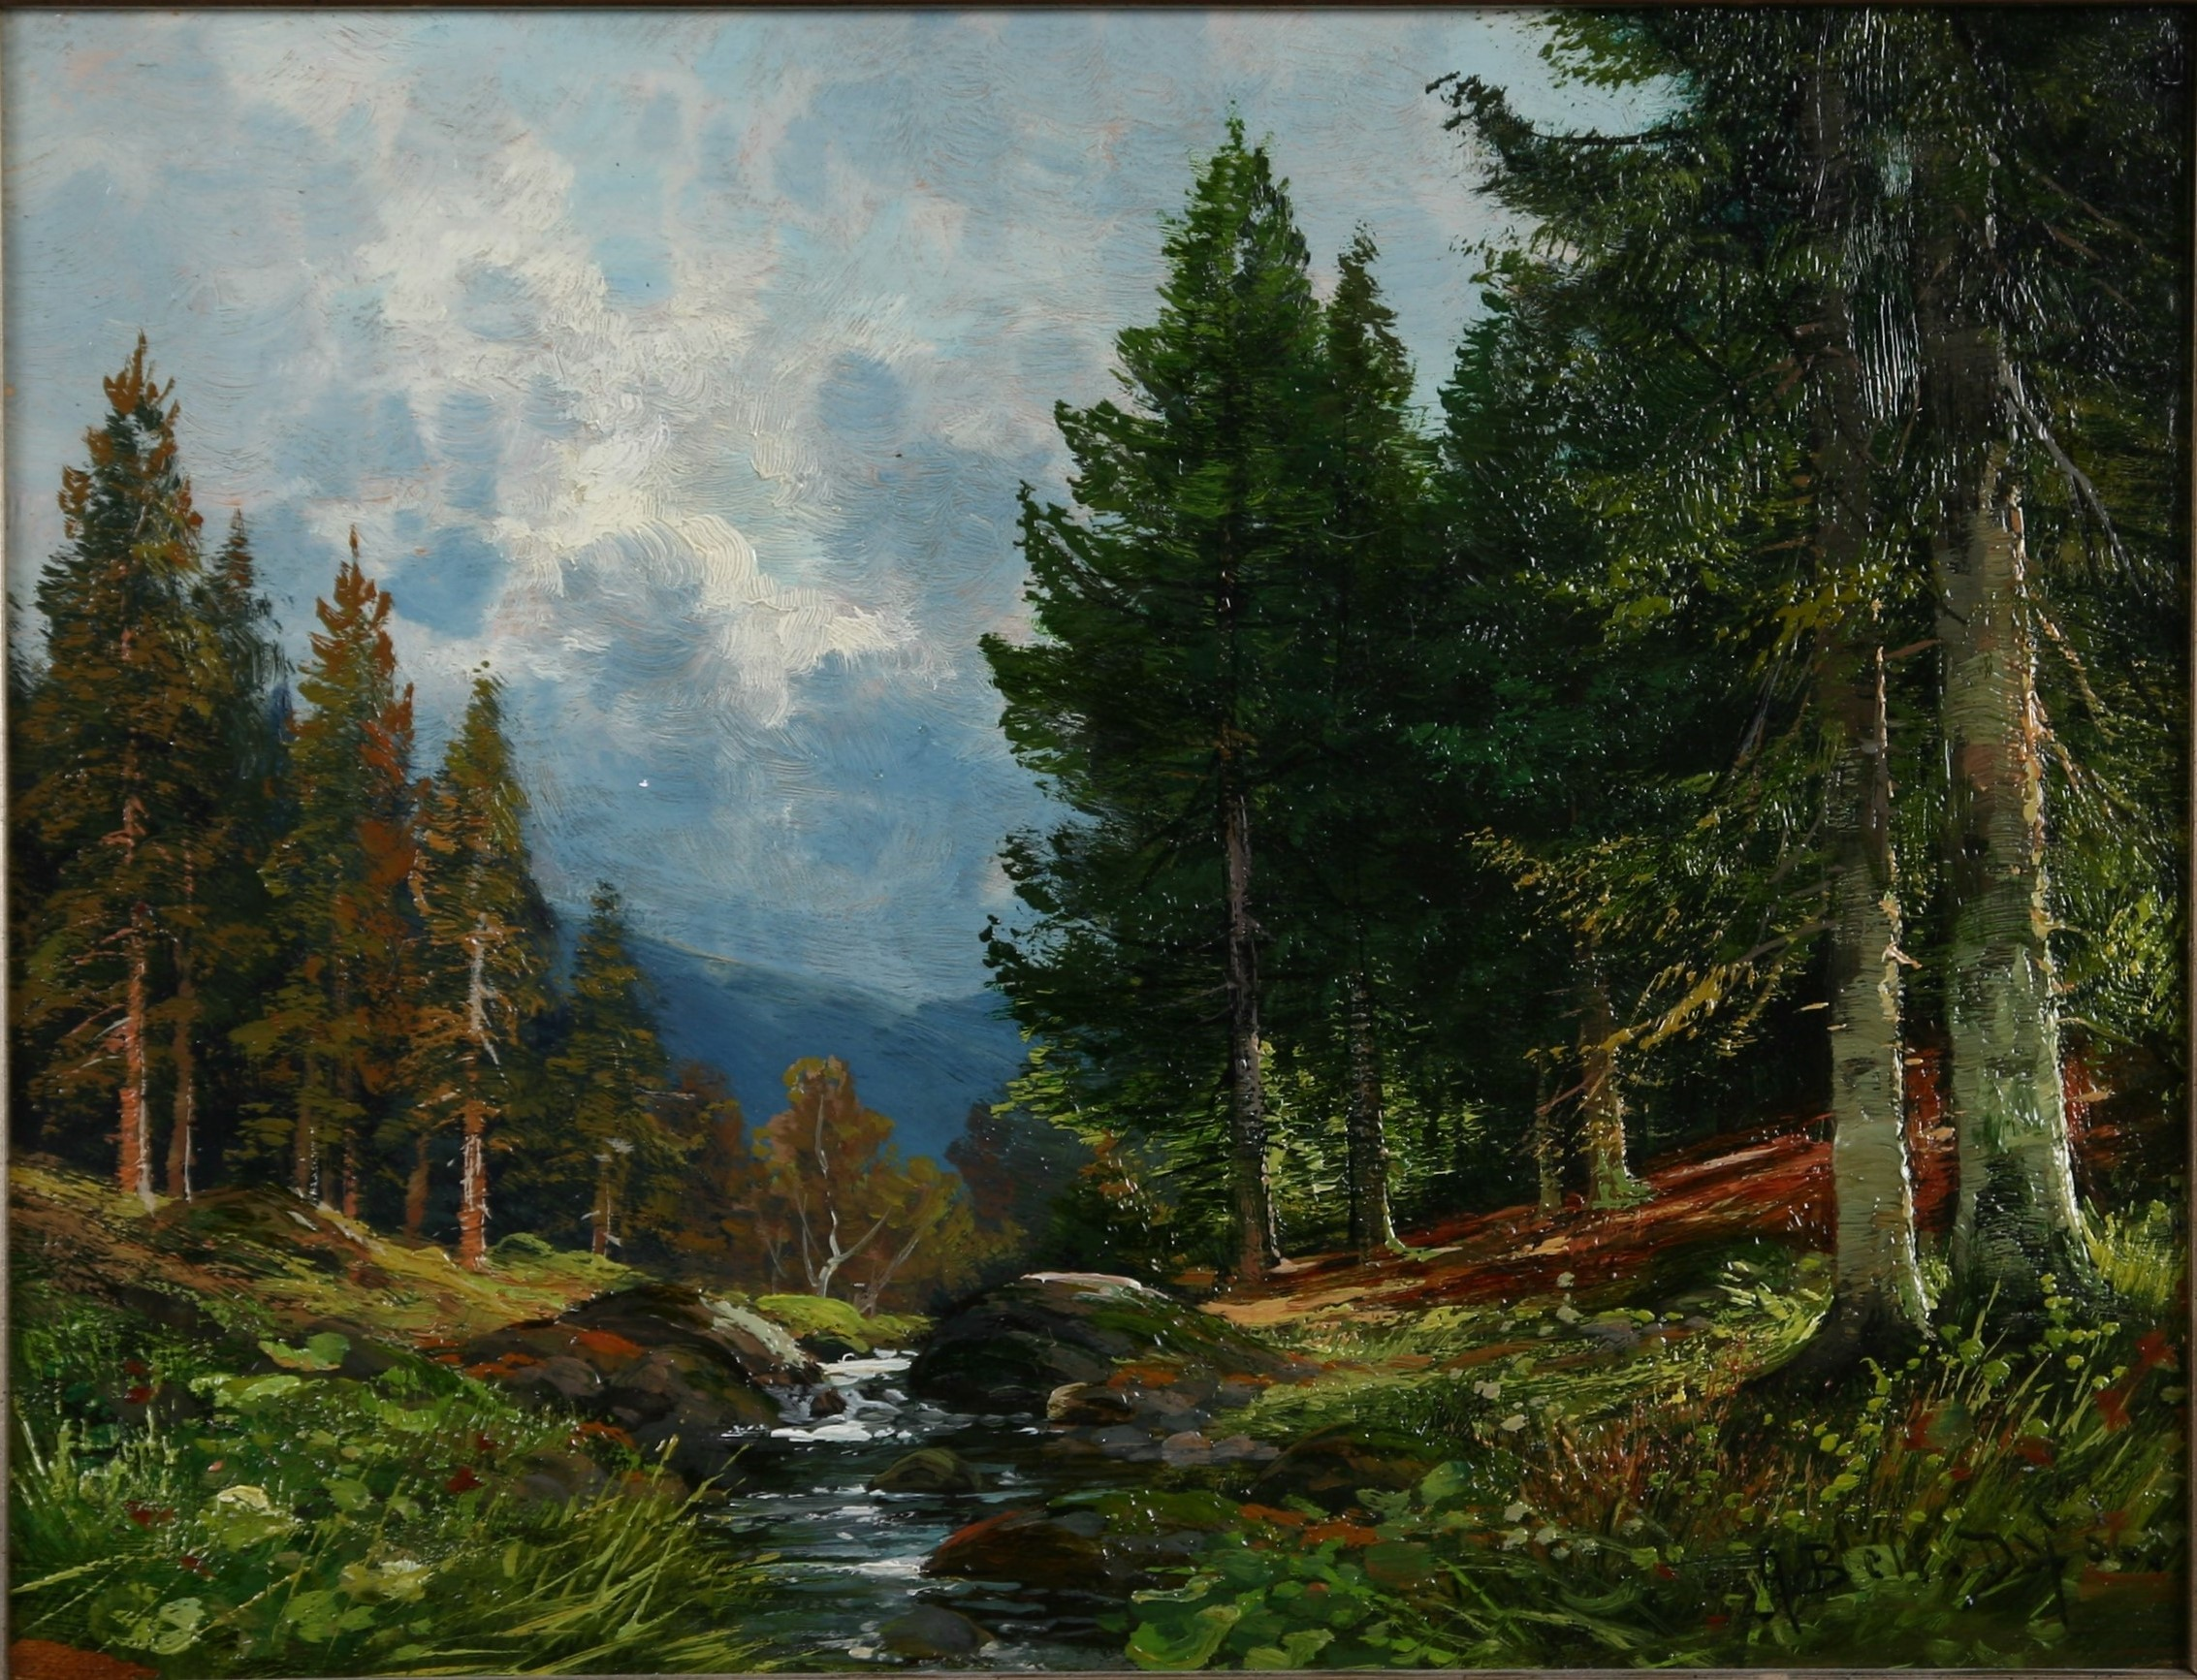 Das Ebersbachtal bei Sorge, 1906 (Harzmuseum Wernigerode CC BY-NC-SA)